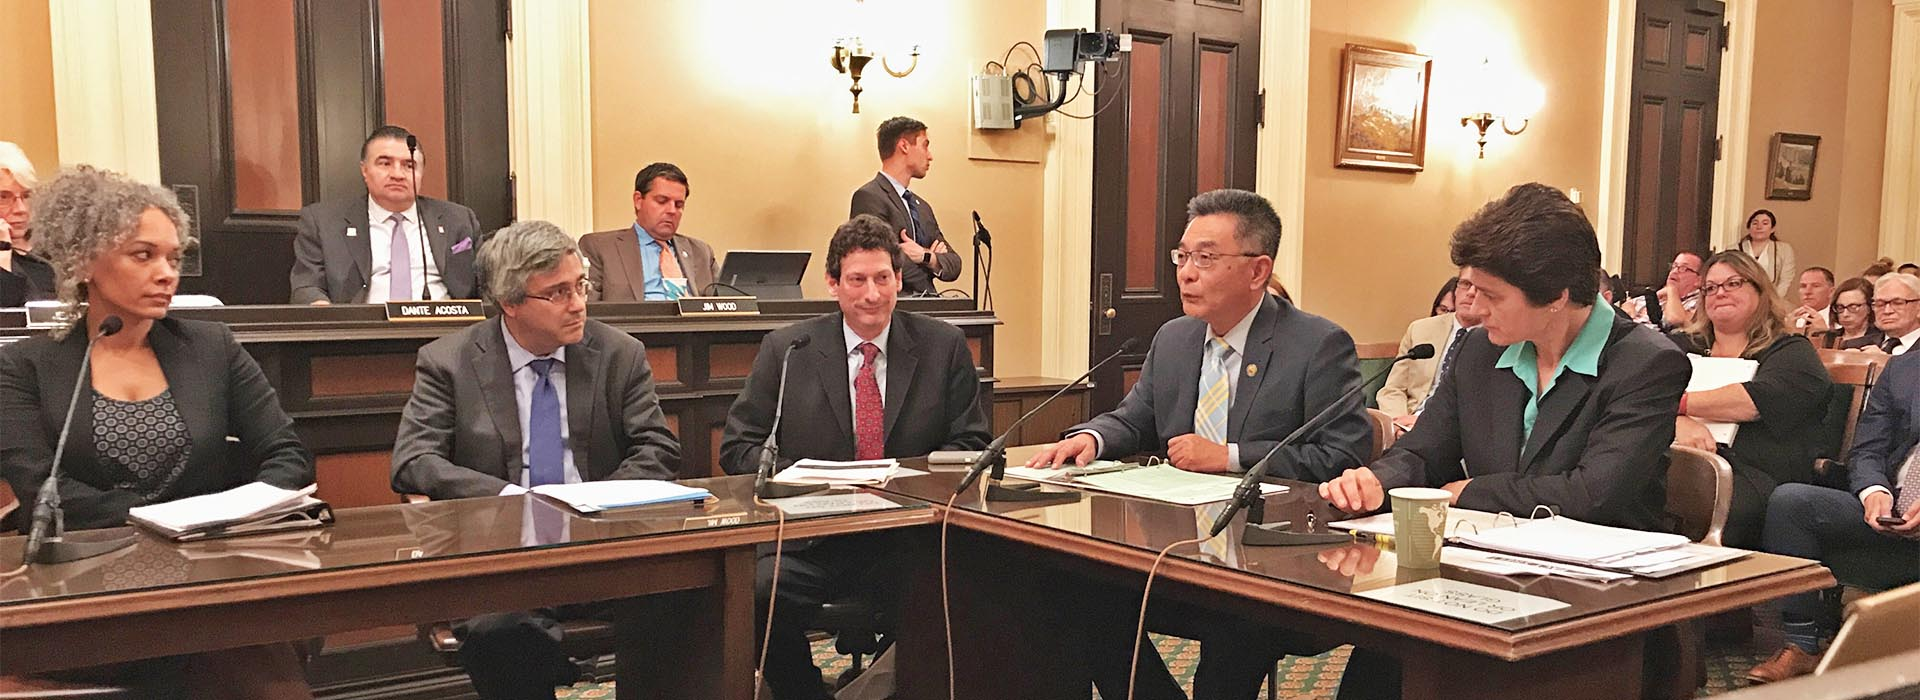 CSUSB hate crime expert Brian Levin testifies before state Joint Legislative Audit Committee